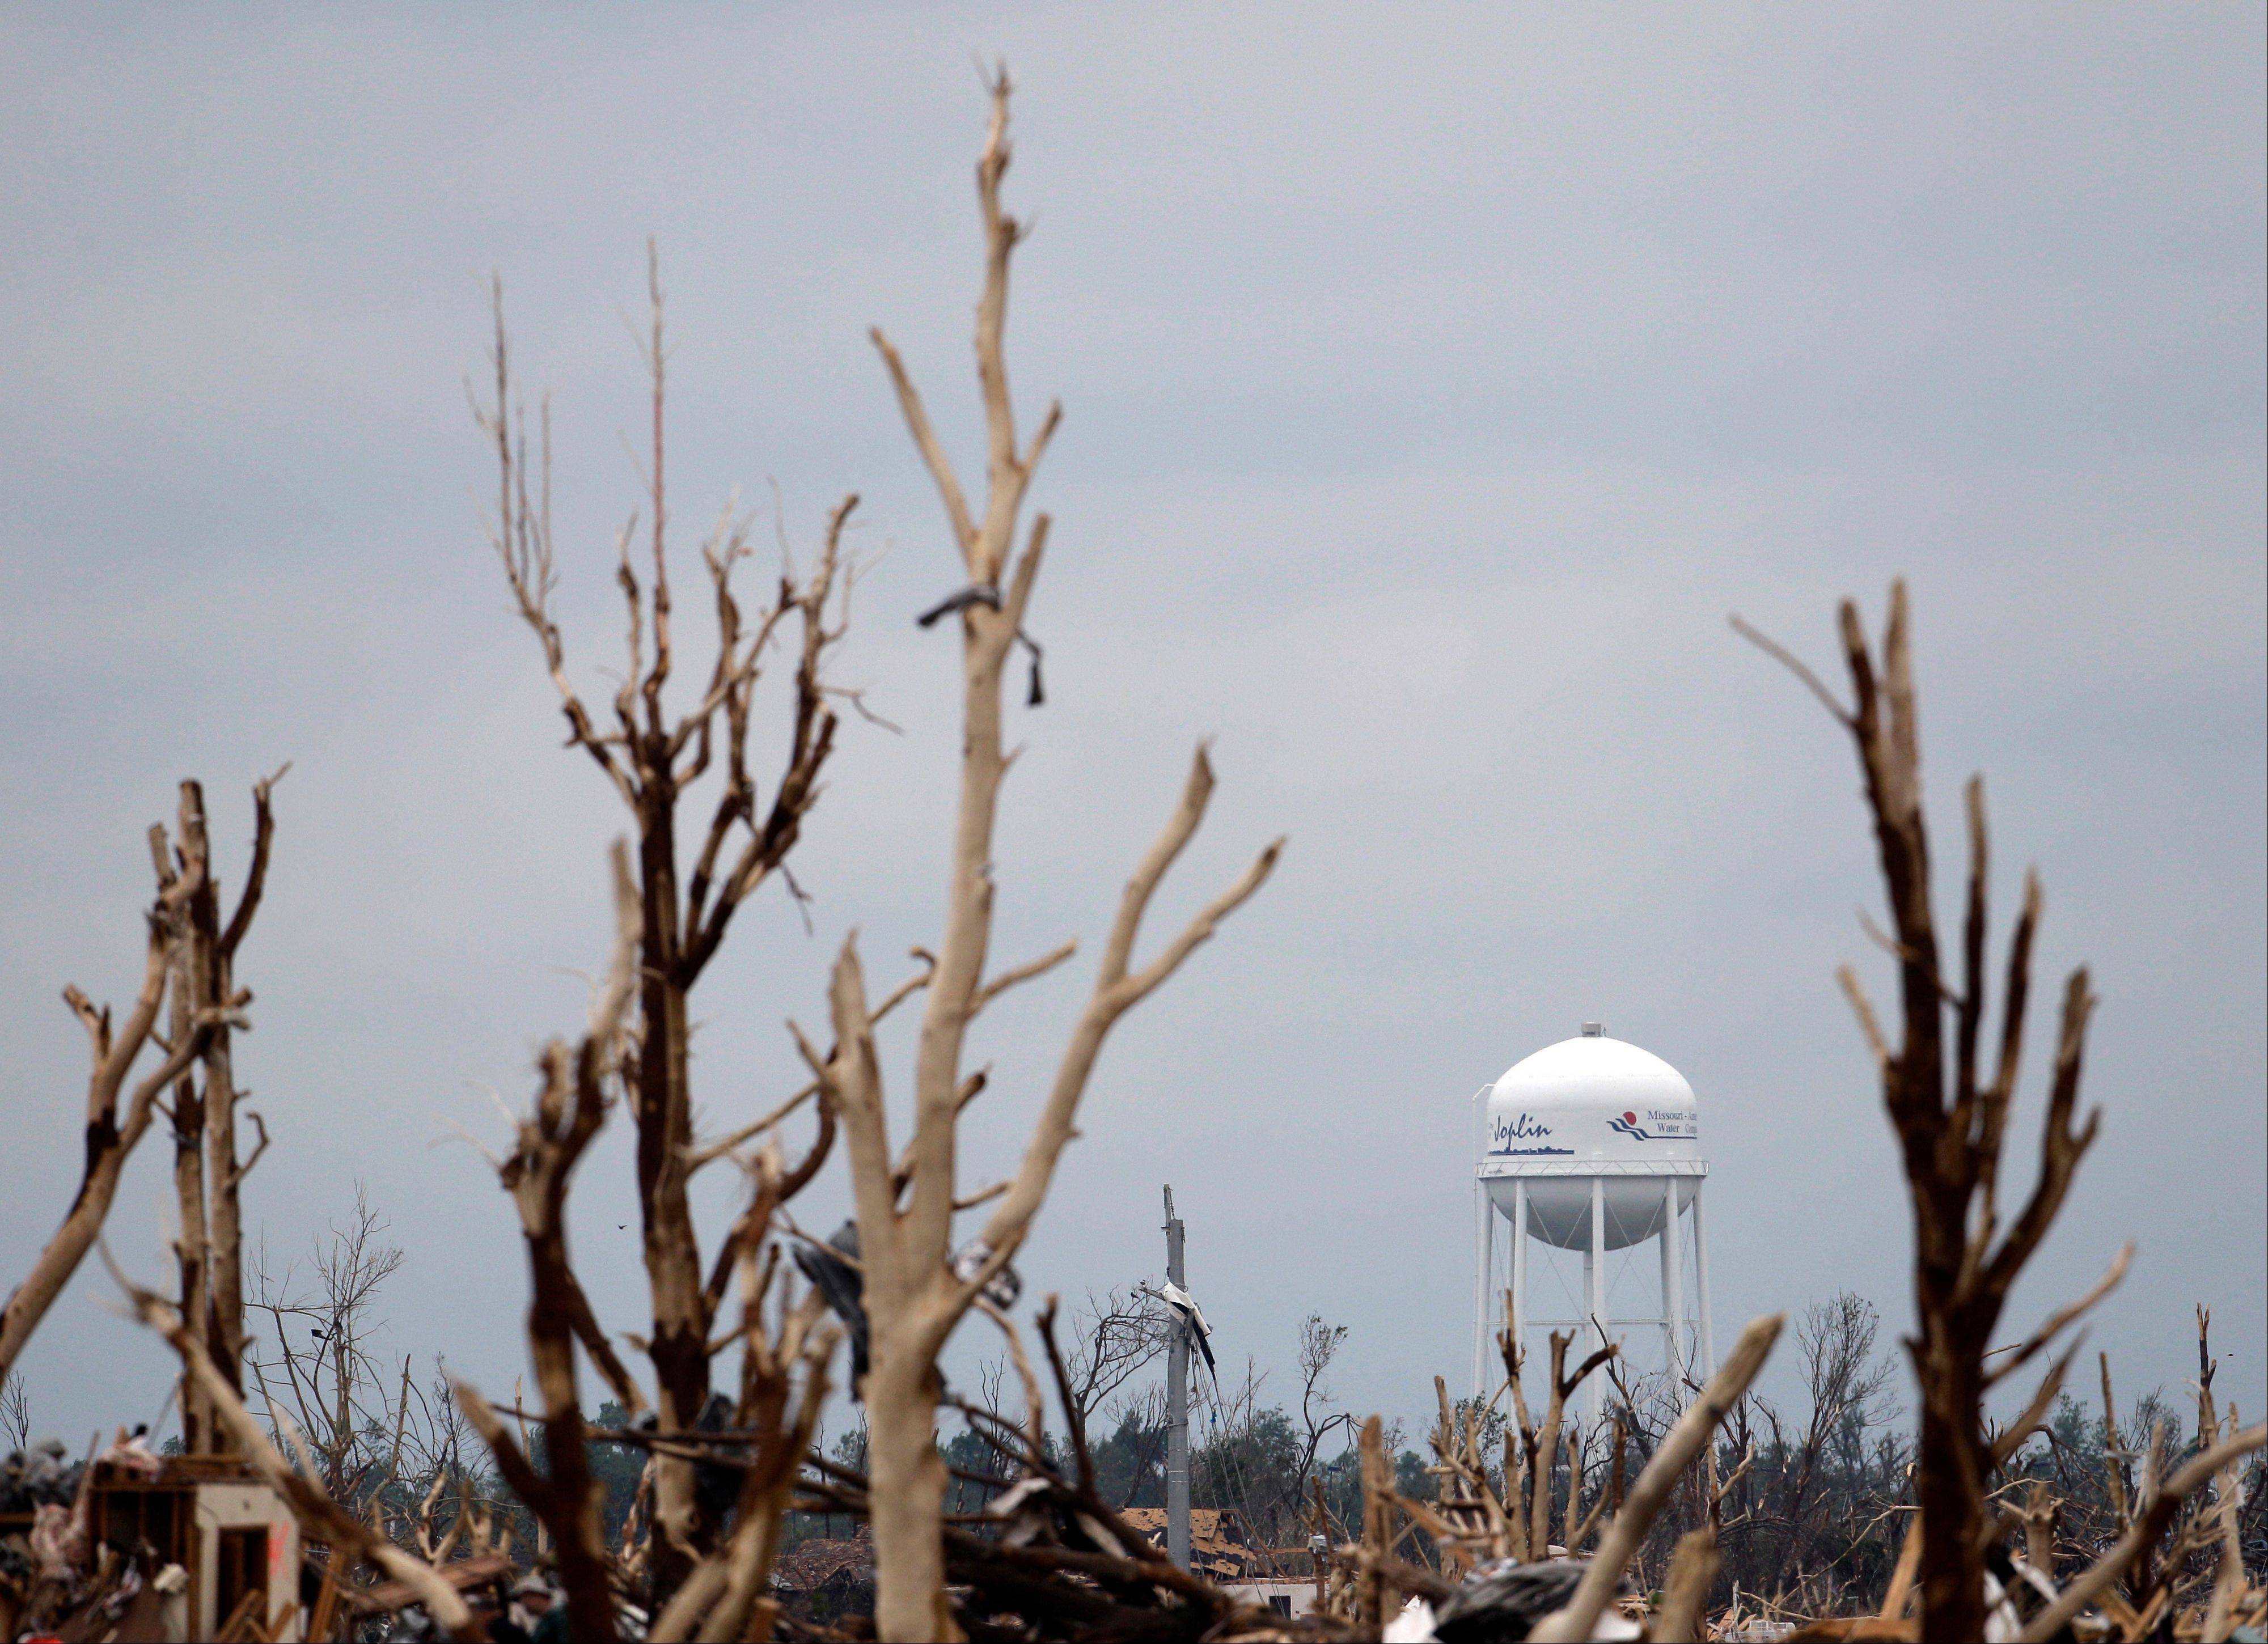 A water tower stands among tattered trees in a devastated Joplin, Mo. neighborhood Thursday, May 26, 2011. An EF-5 tornado tore through much of the city Sunday, damaging a hospital and hundreds of homes and businesses and killing at least 125 people.